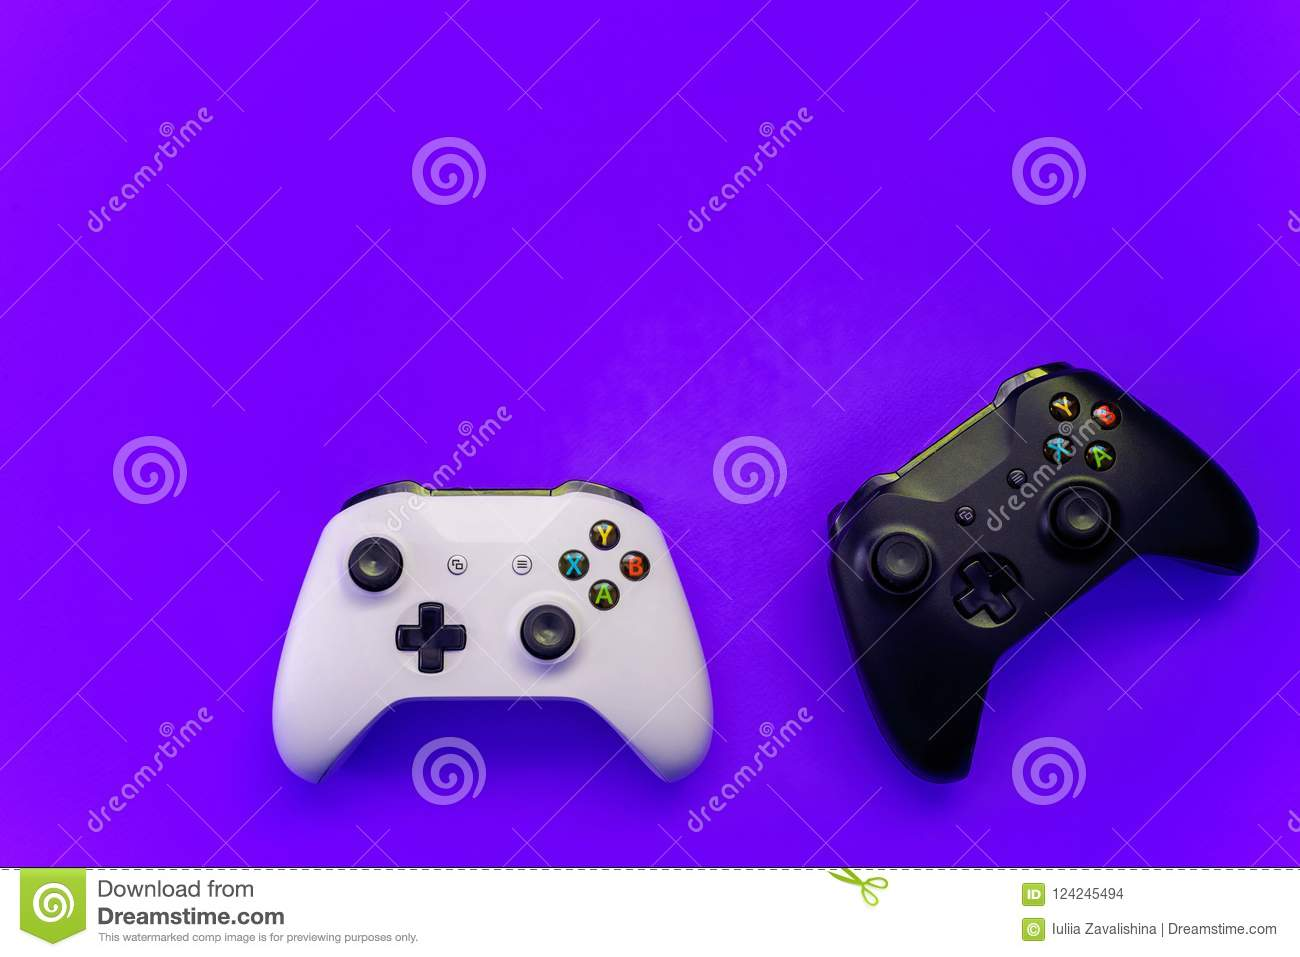 saint petersburg russia april black white joystick xbox one s gamepad game console purple background computer gaming 124245494